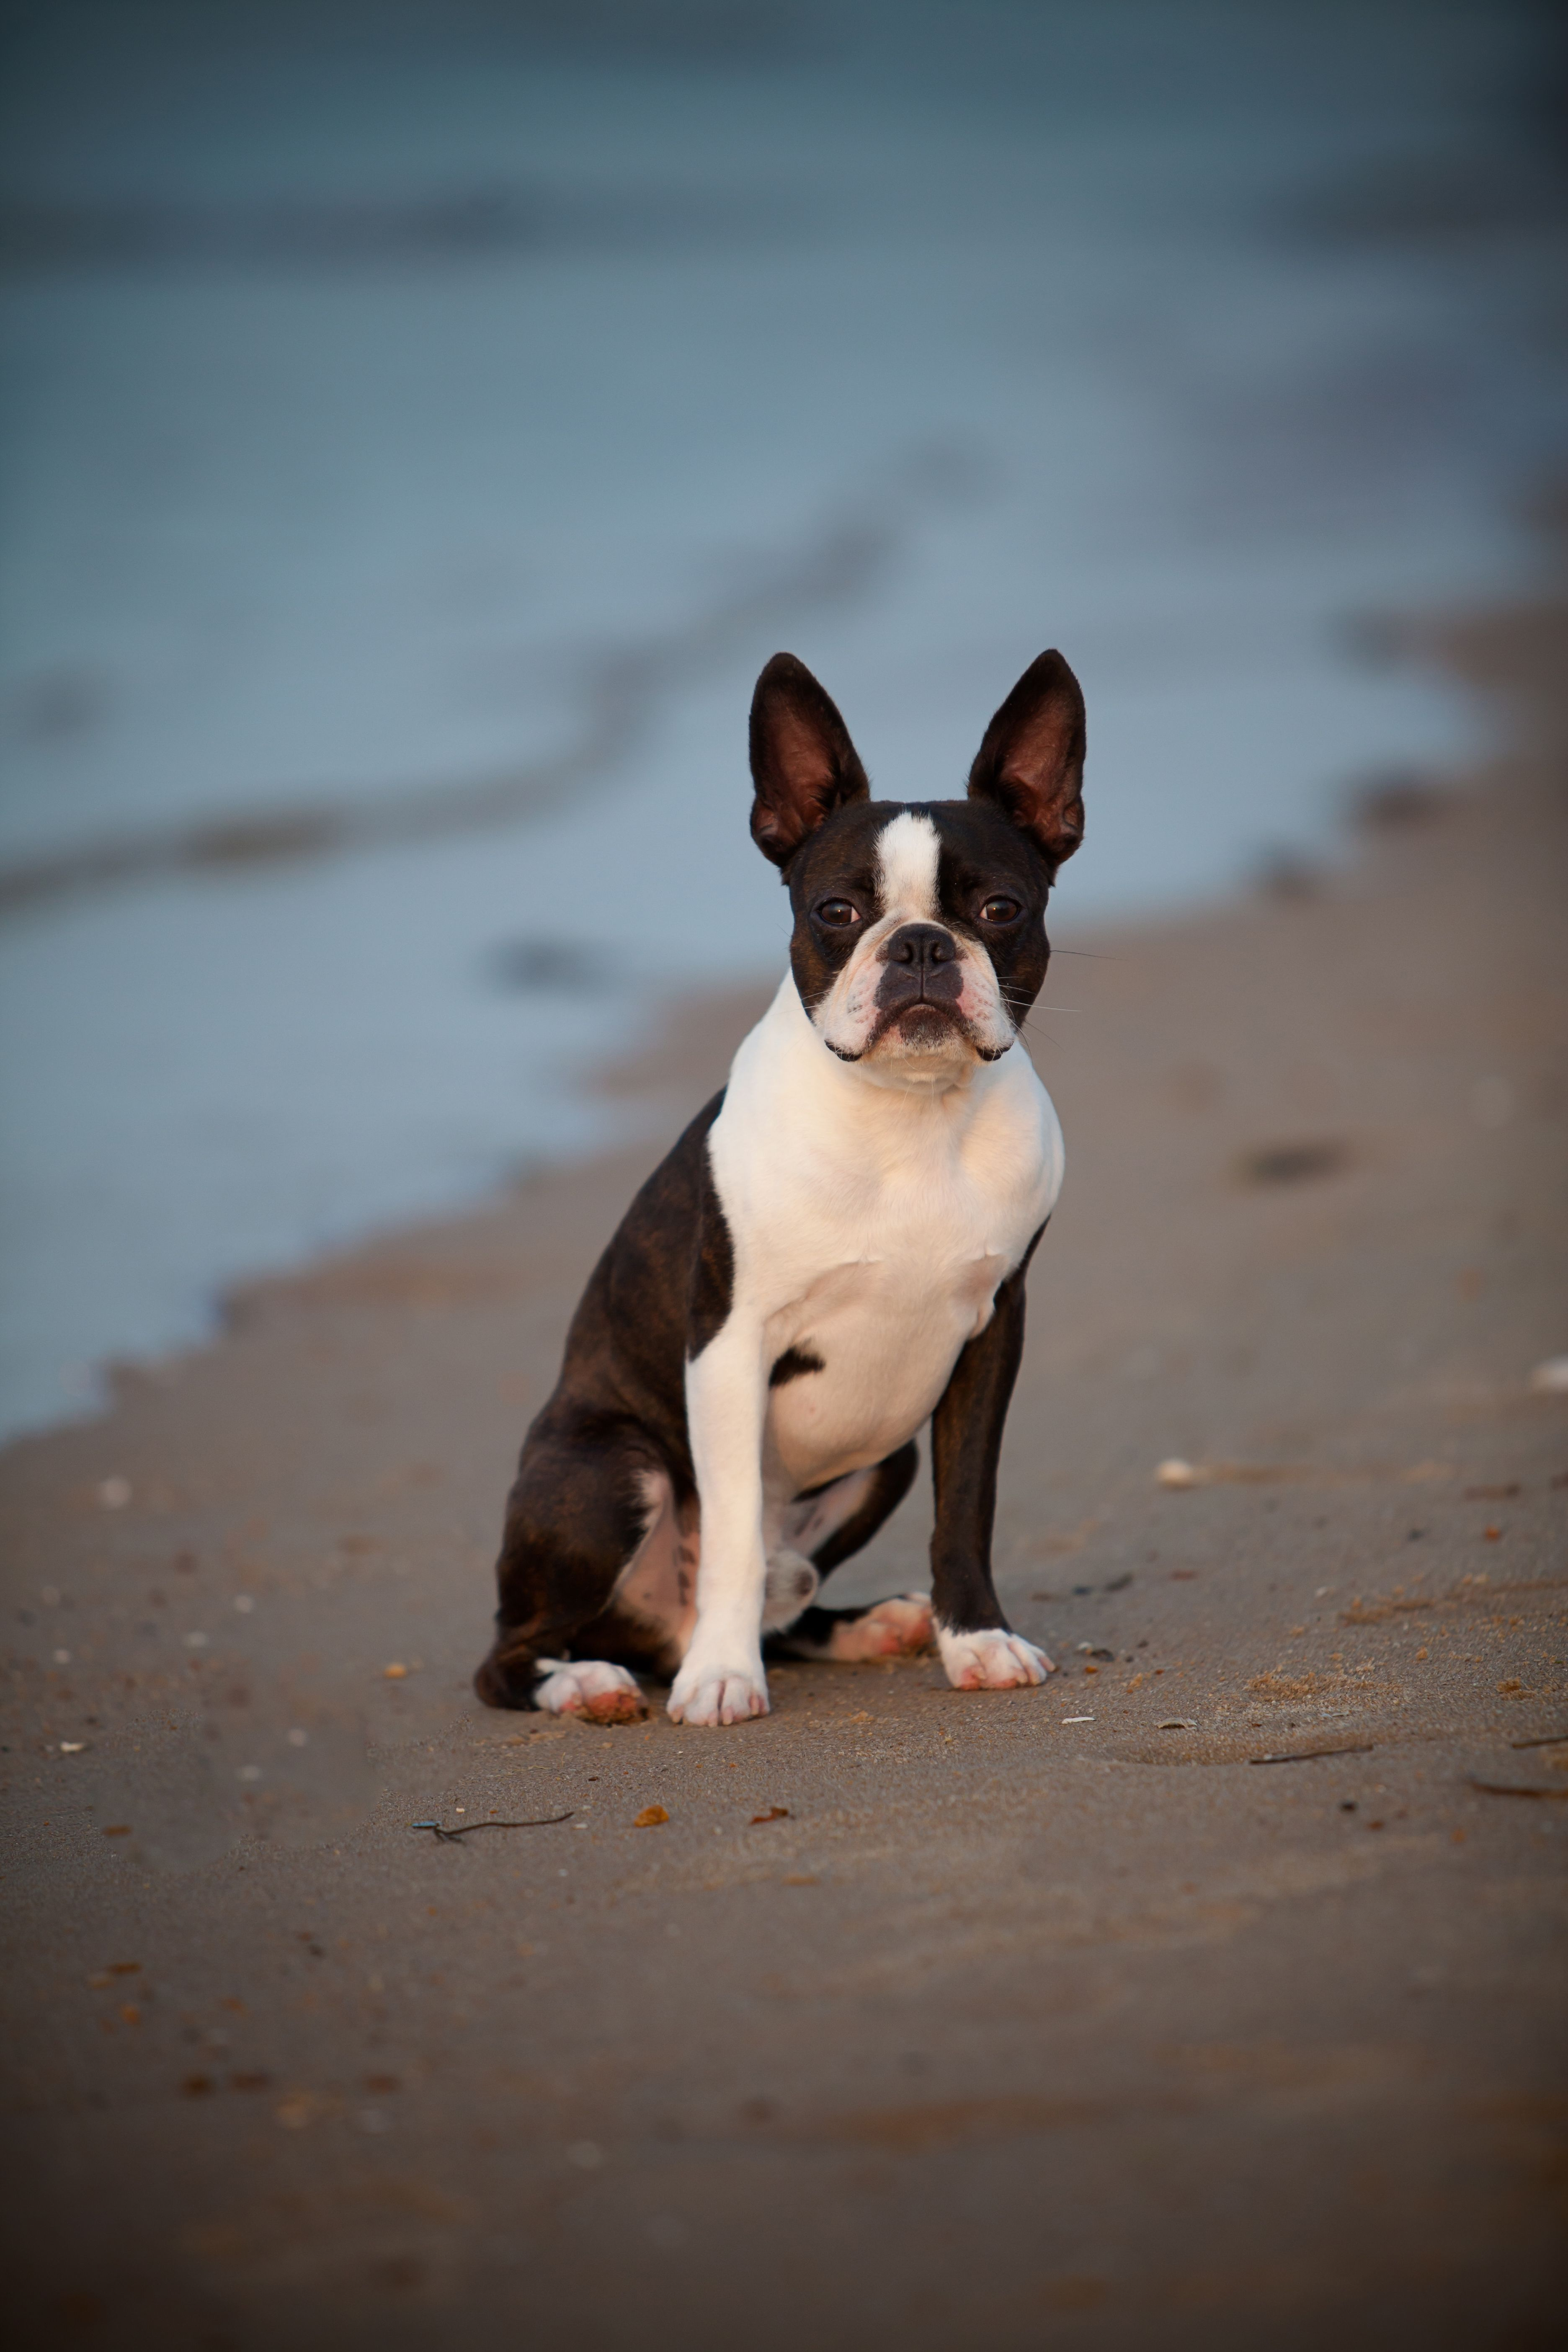 Boston Terrier On Beach With Images Boston Terrier Boston Terrier Funny Boston Terrier Puppy